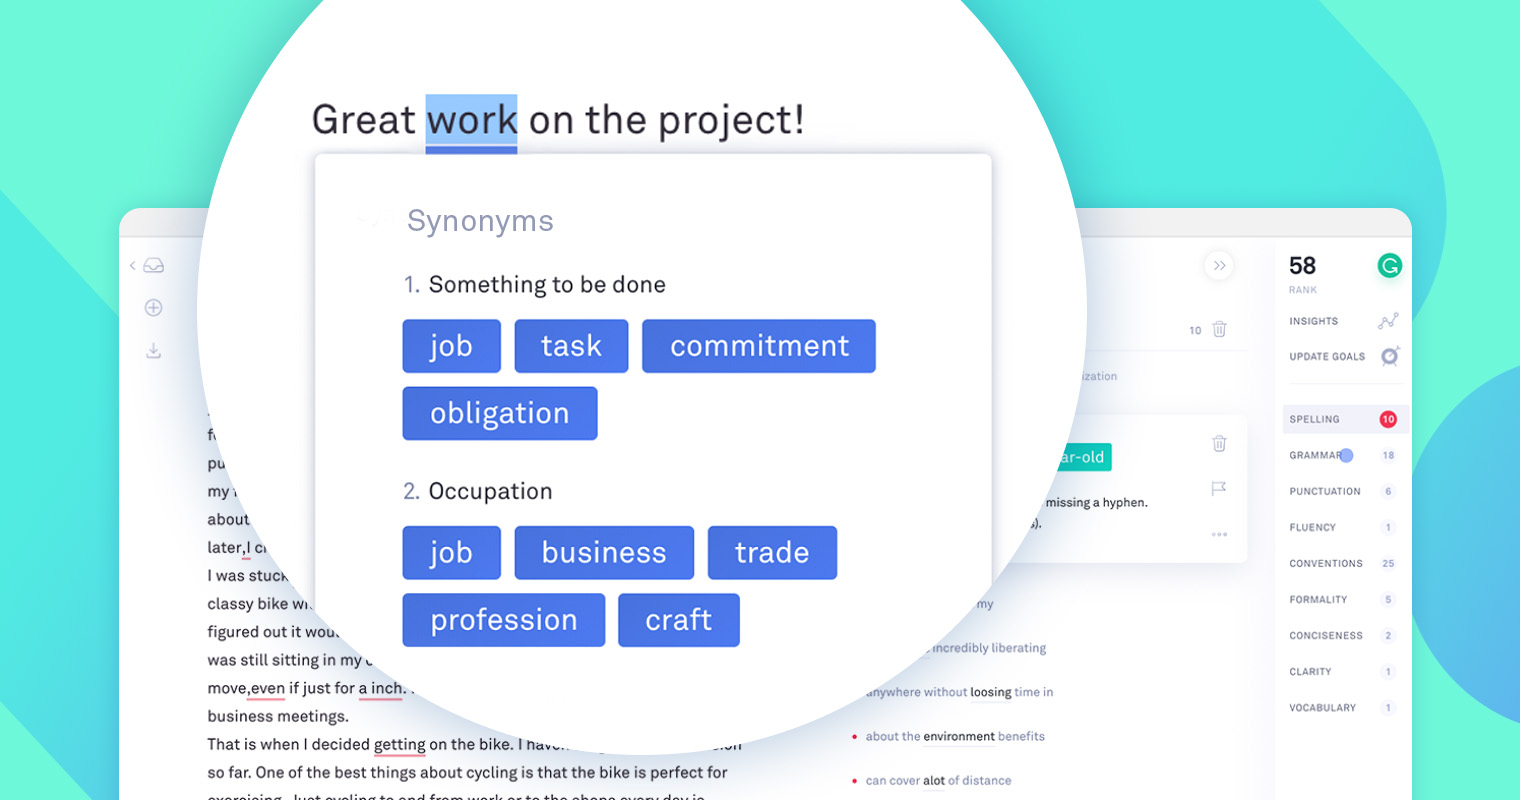 20 Overused Words Grammarly Can Help You Diversify in Your ...